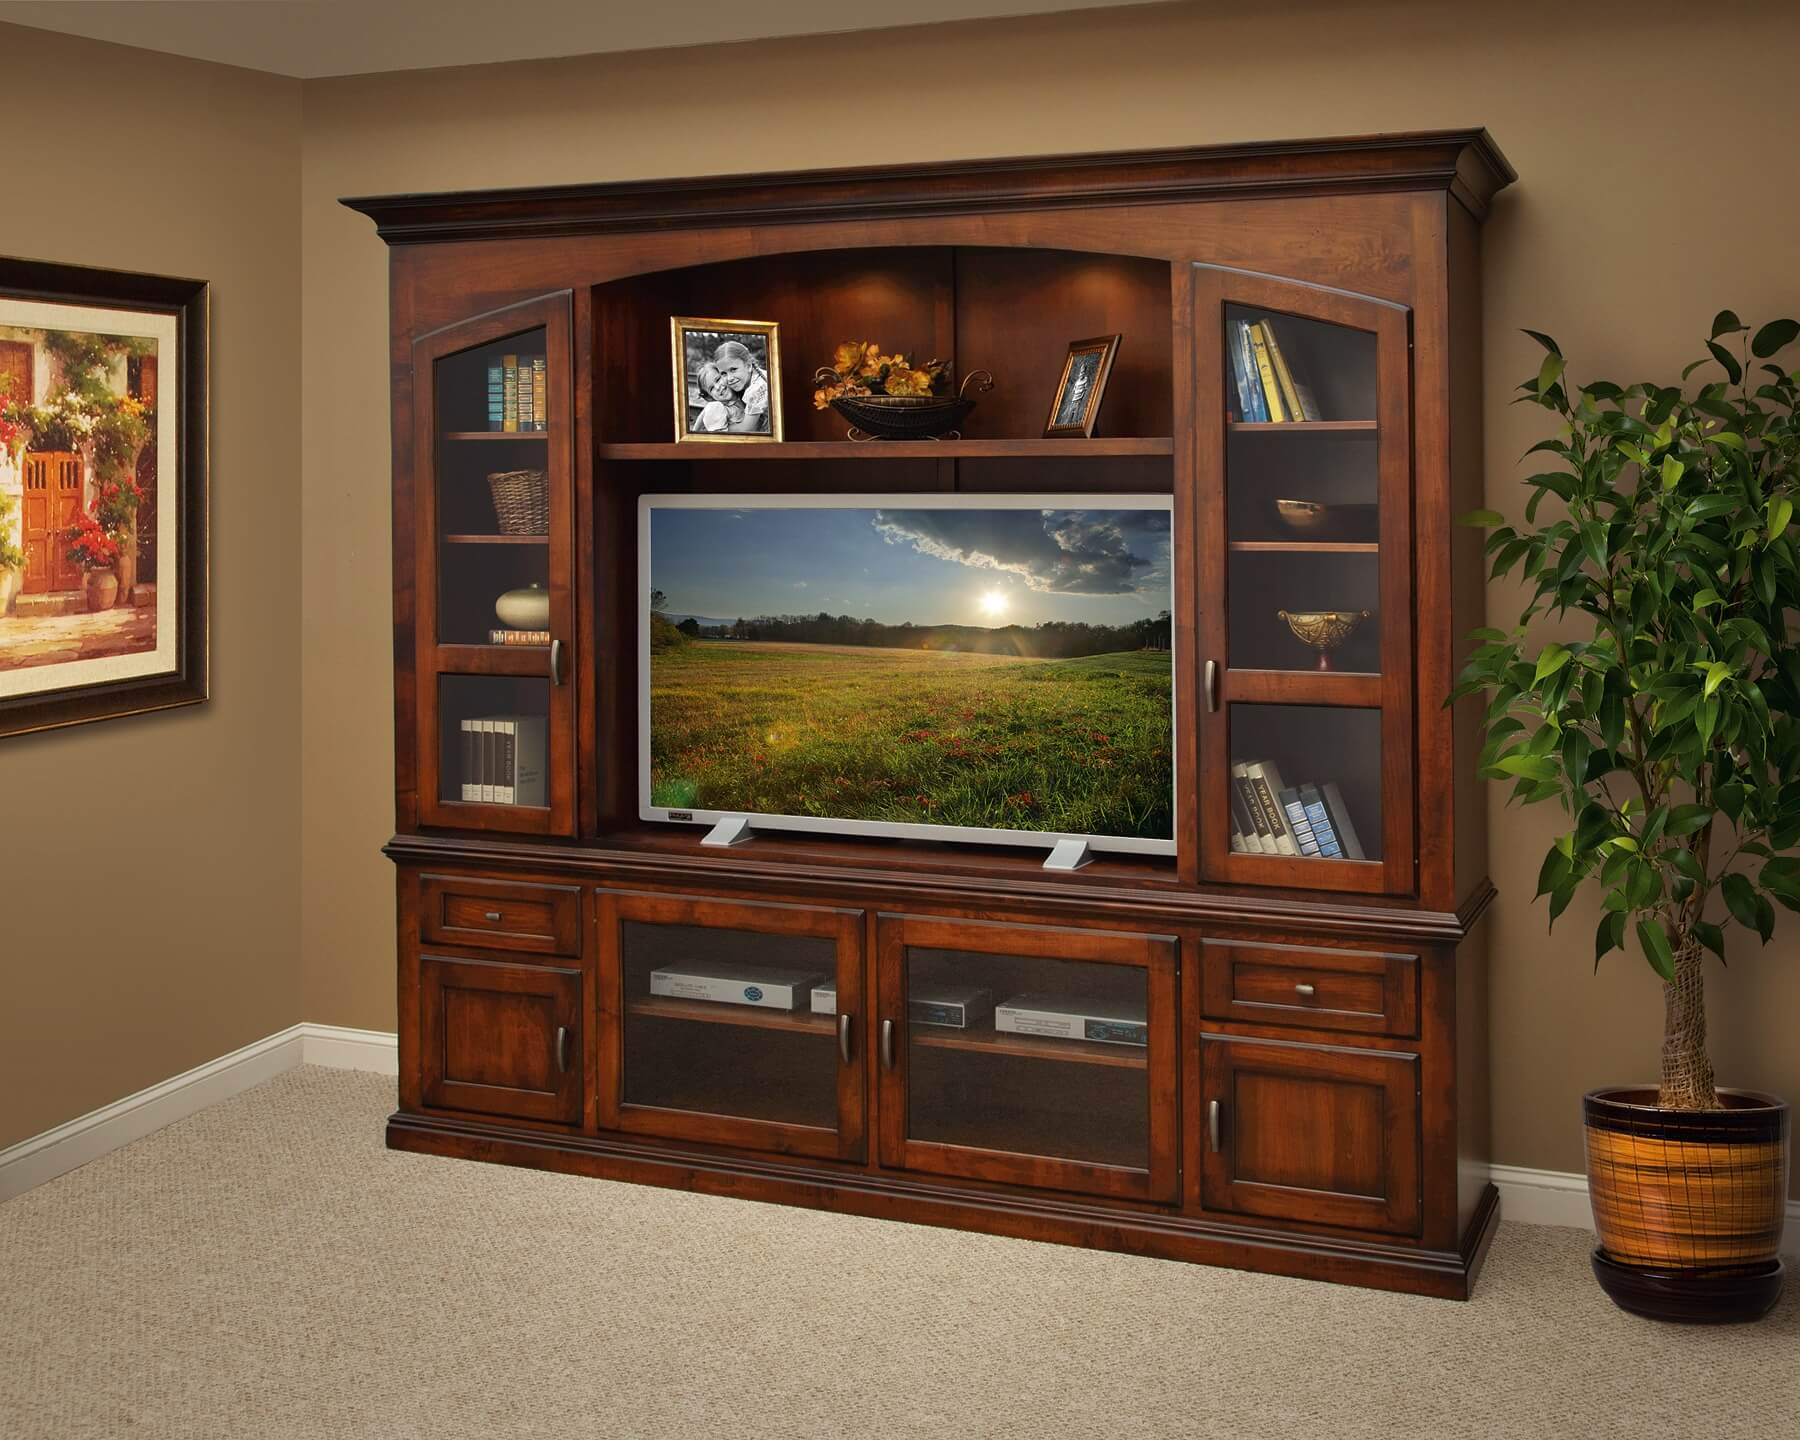 Bailey Entertainment Center Cedar Ridge Furniture